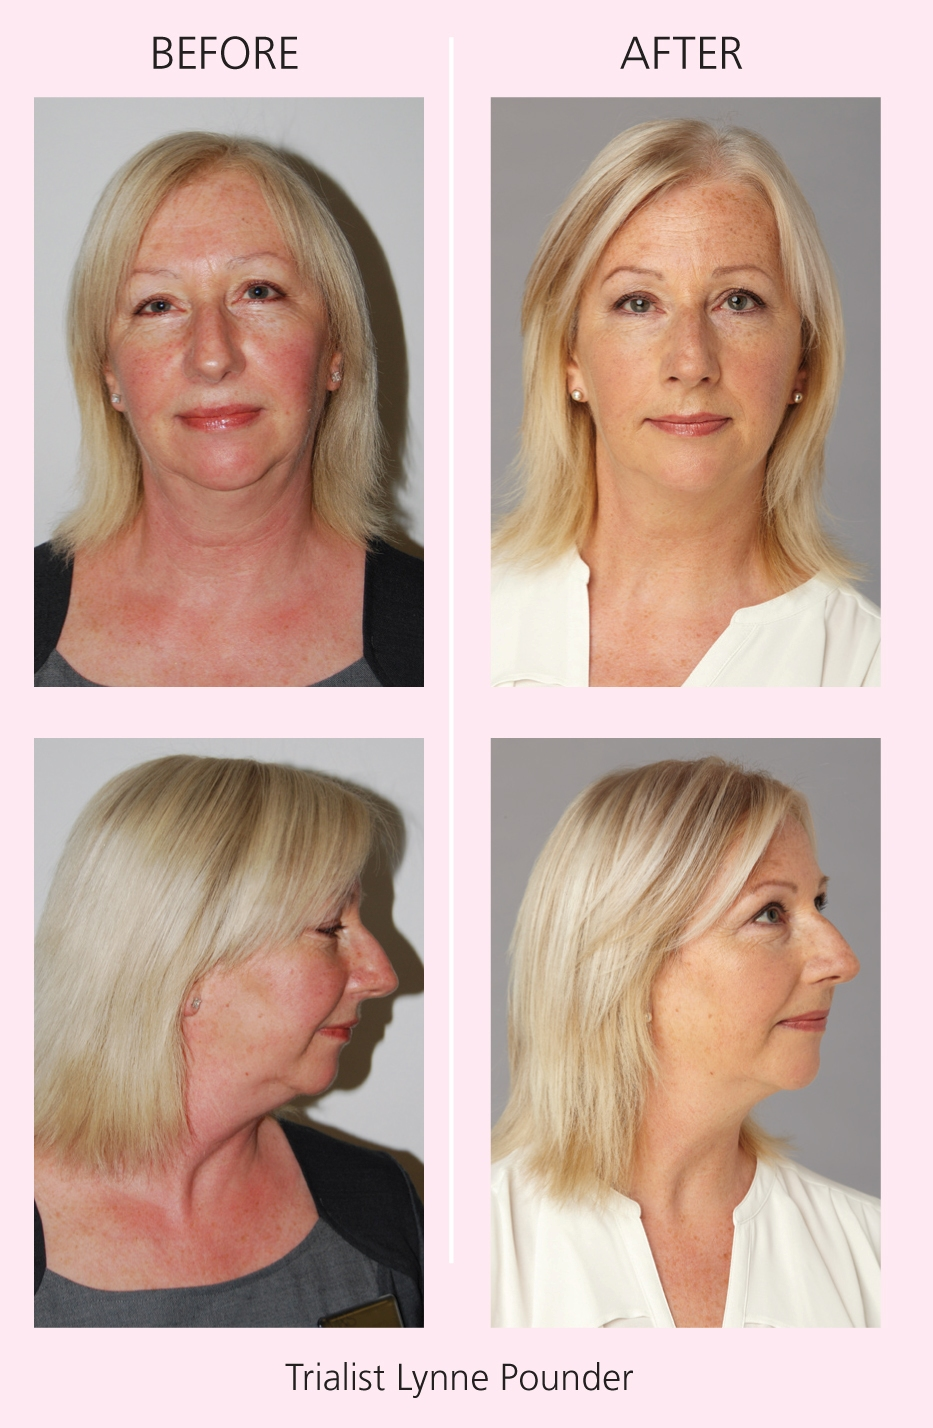 Facial Flex before and after images